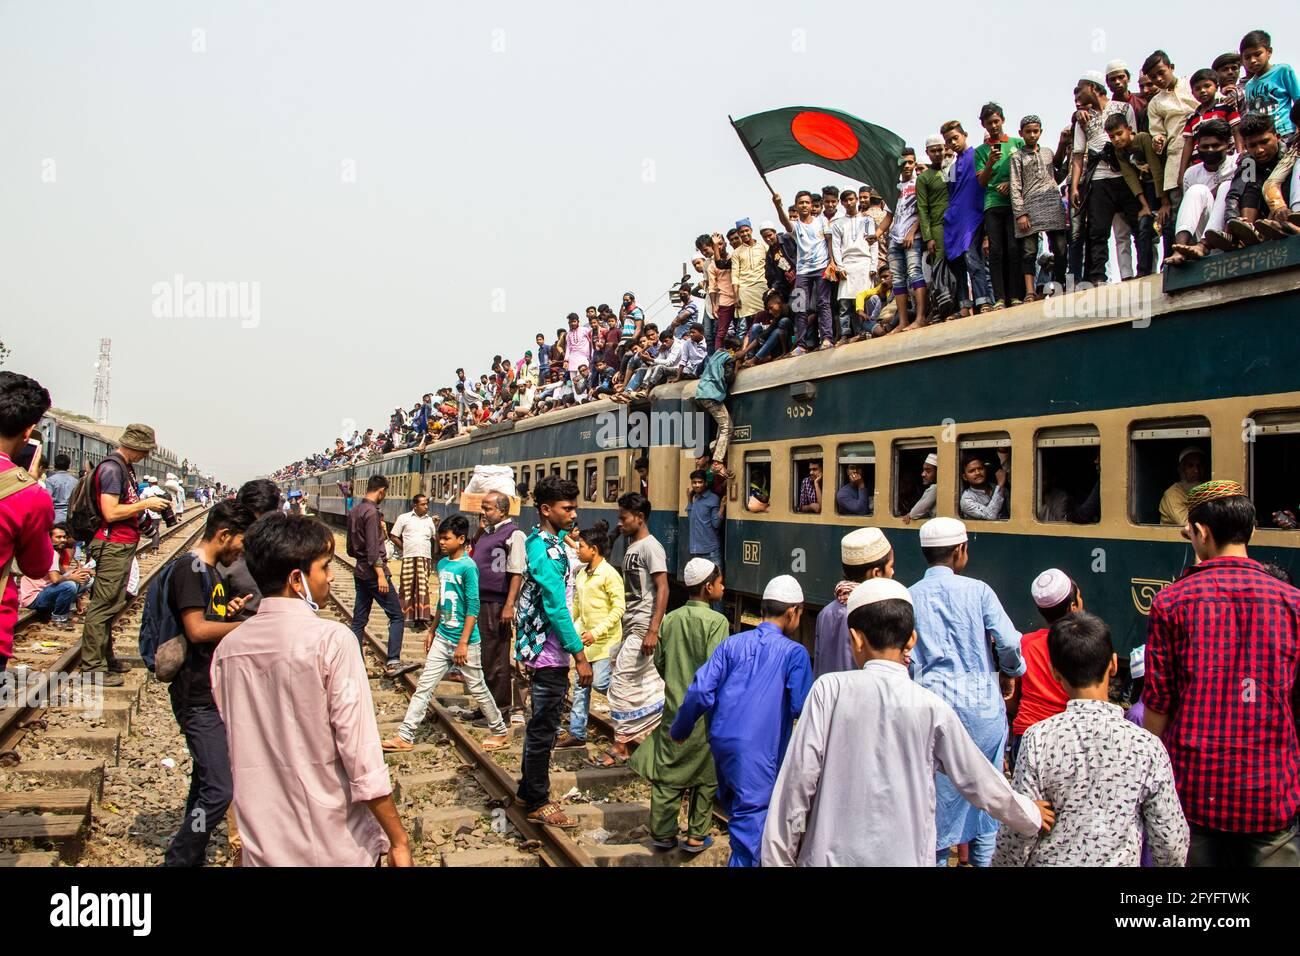 Risky journey by train I captured this image on 19th February 2019 from Tonggi railway station, Dhaka, Bangladesh, South Asia Stock Photo